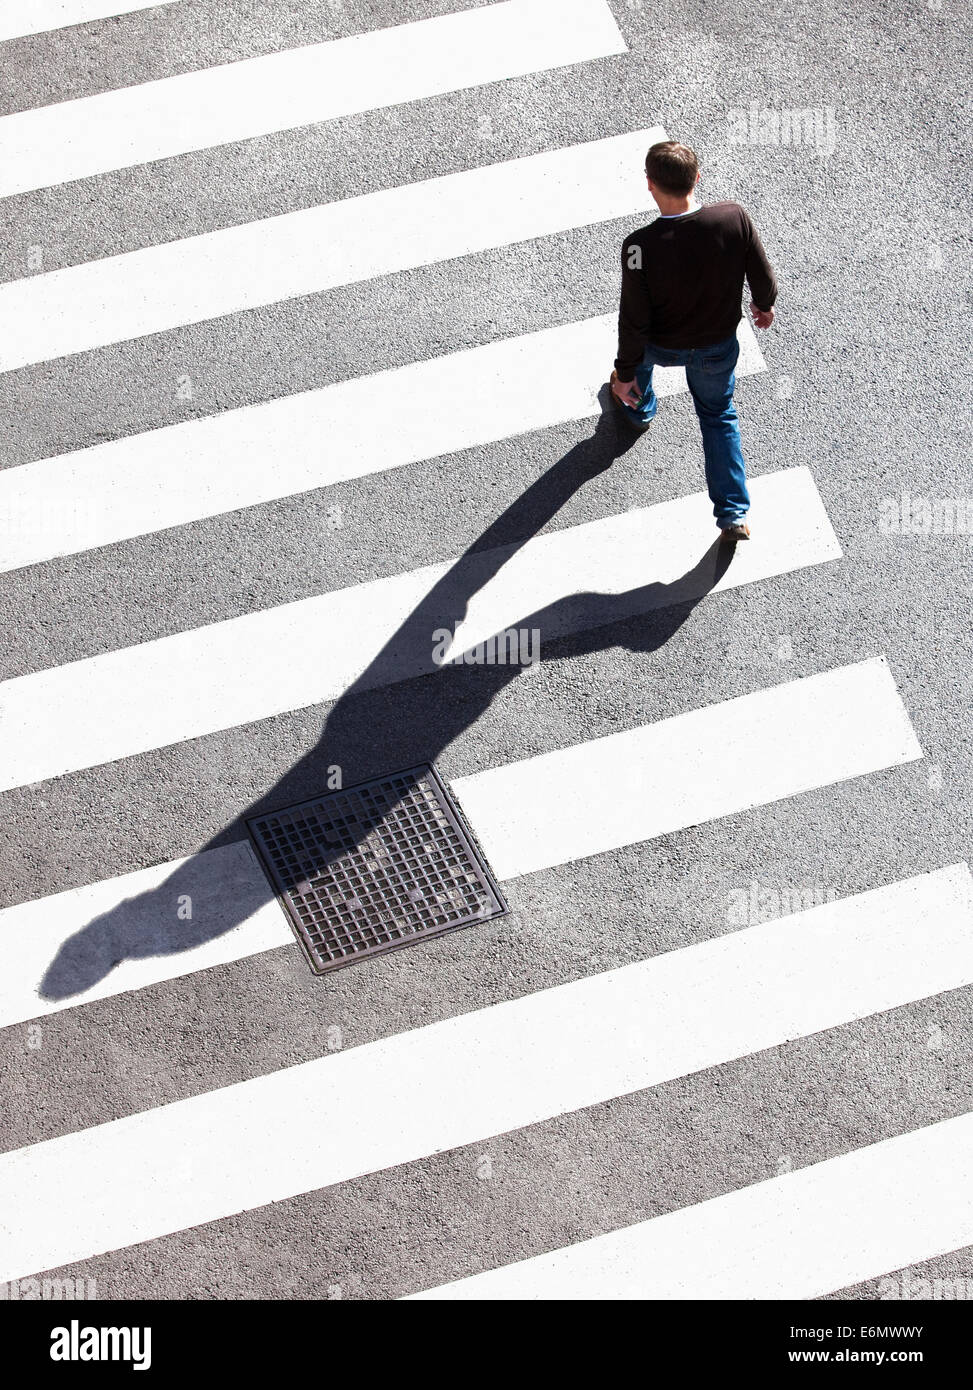 Pedestrian Crossing the Street on Zebra Crossing. - Stock Image